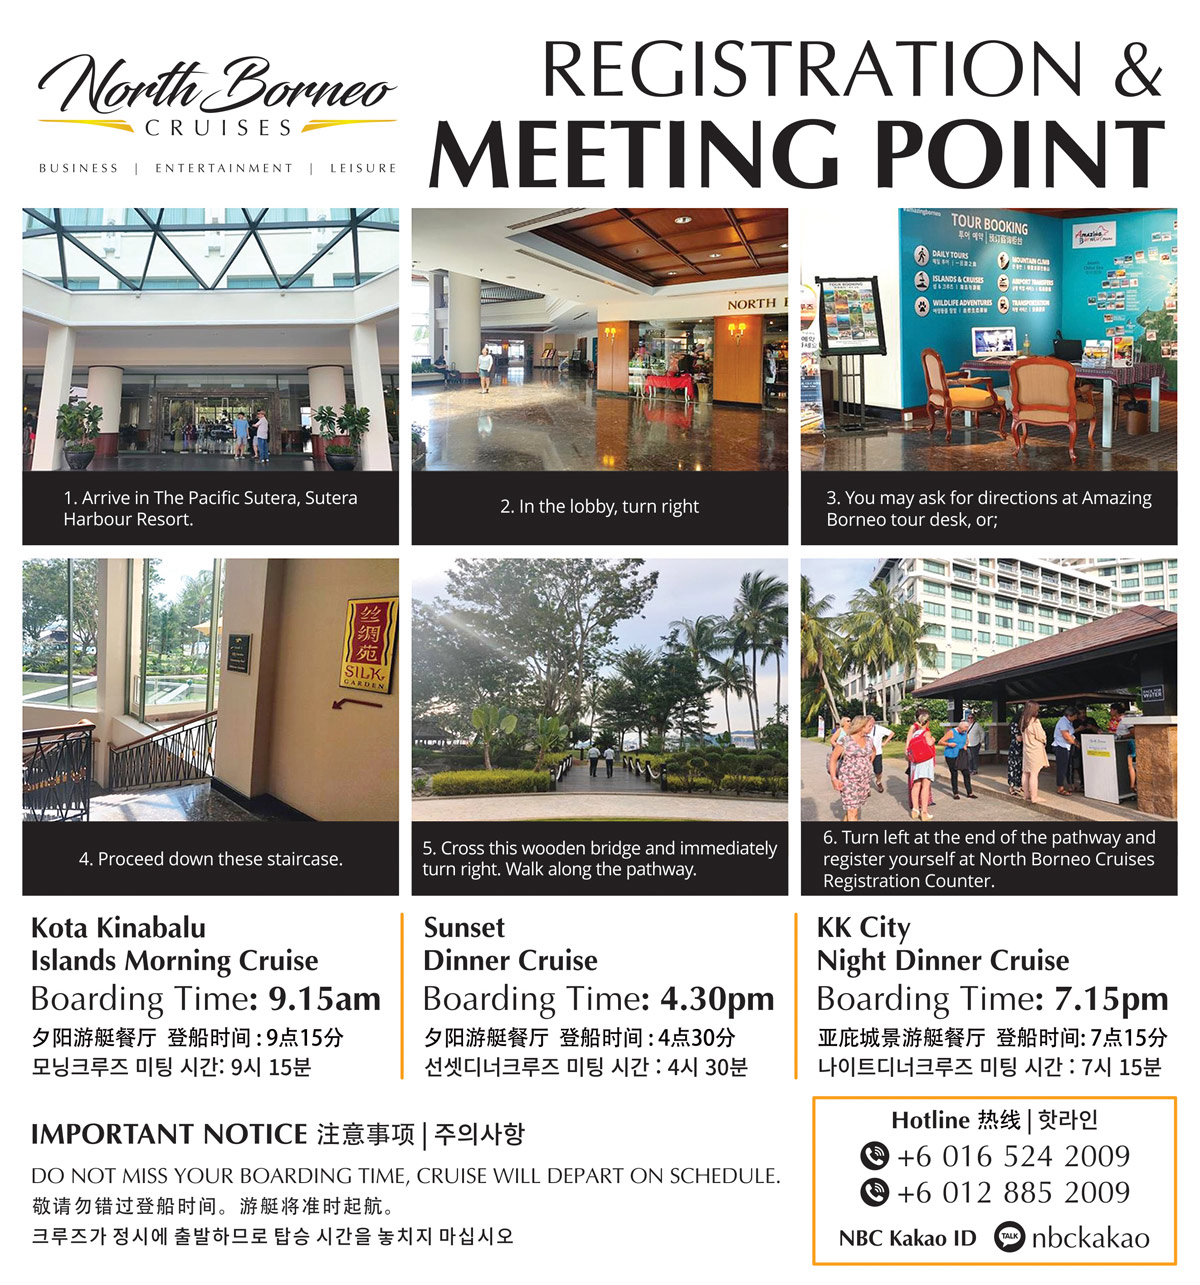 North Borneo Cruises Registration and Meeting Point